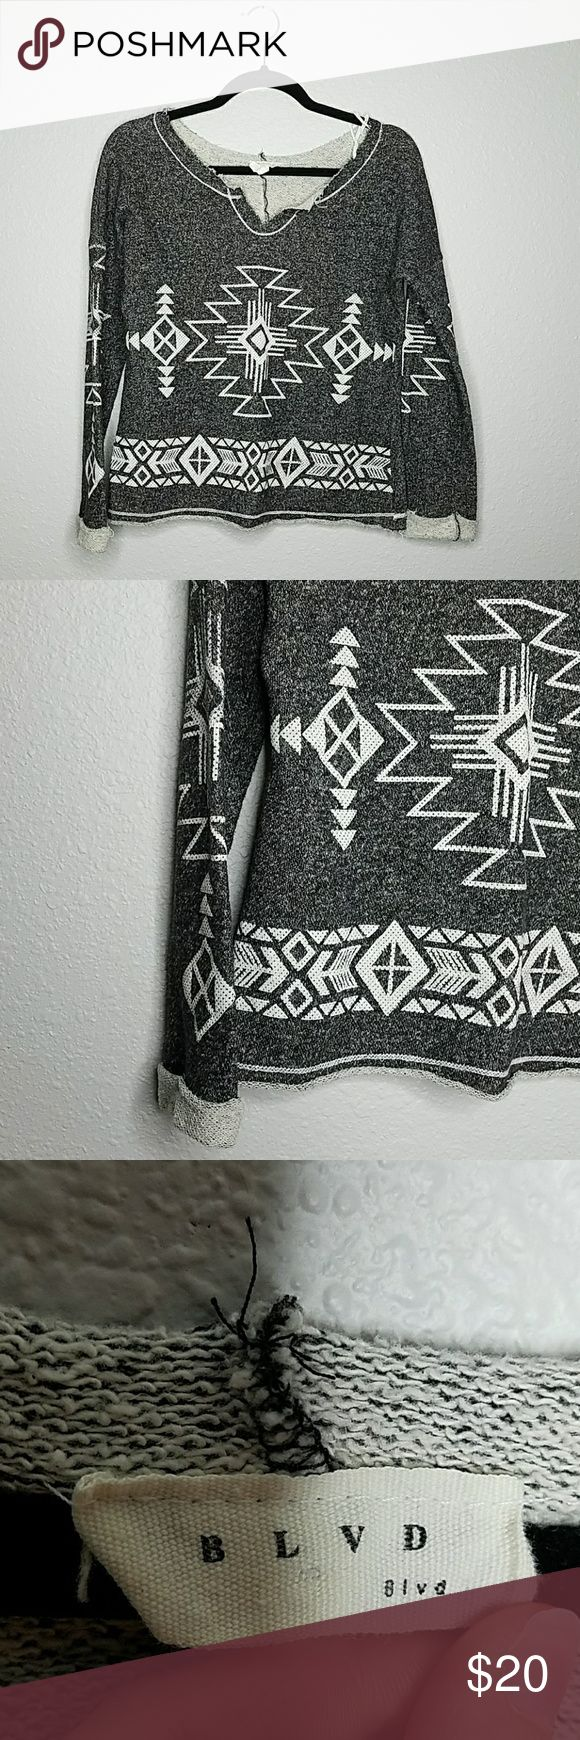 BLVD Tribal Print Sweater Excellent condition, super cozy & soft. No size tag, refer for the measurements. Dark grey & white print.   Pit to Pit: 20 inches Length:21 inches BLVD Sweaters